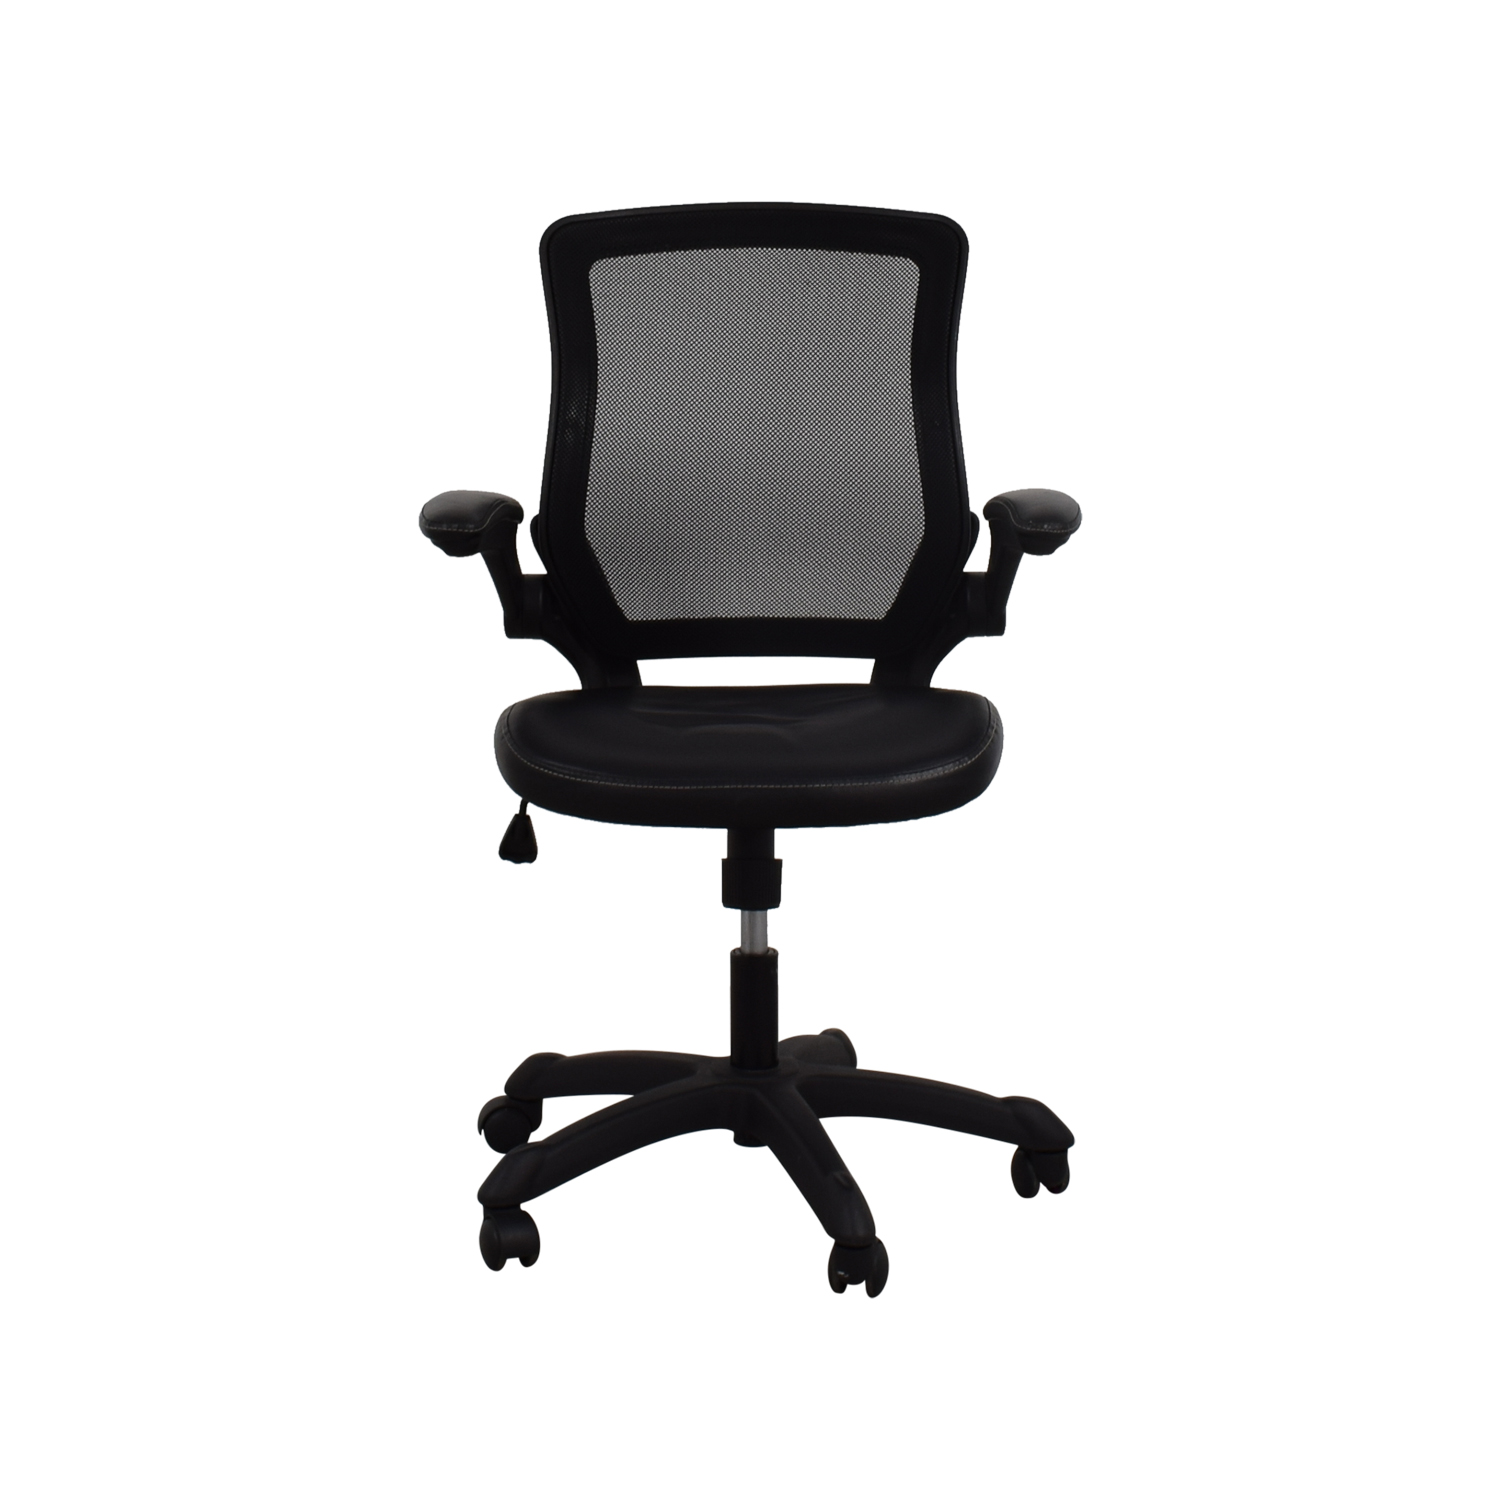 Adjustable Black Office Arm Chair used